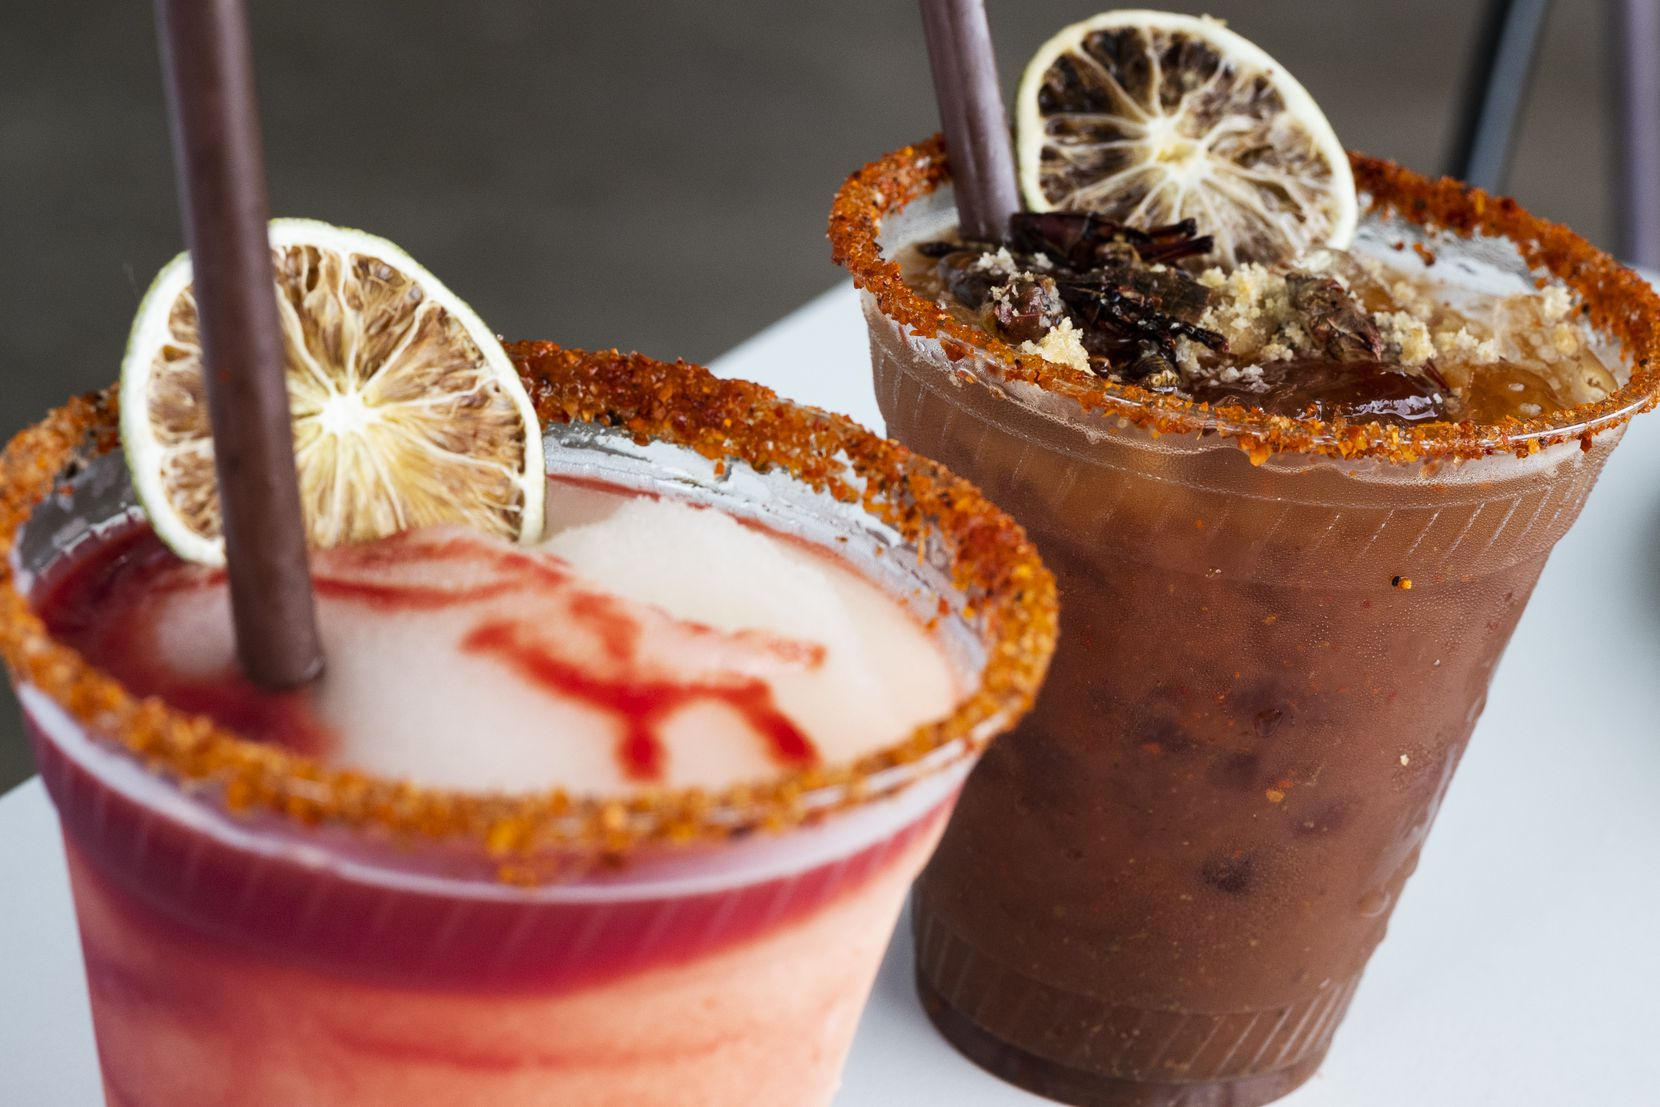 Of course, the reincarnated Tacos Mariachi has cocktails. Here's the Milagro Rita, left, with frozen blood orange; and The Cure, right, with mezcal, chicharron and chapulines (grasshoppers).